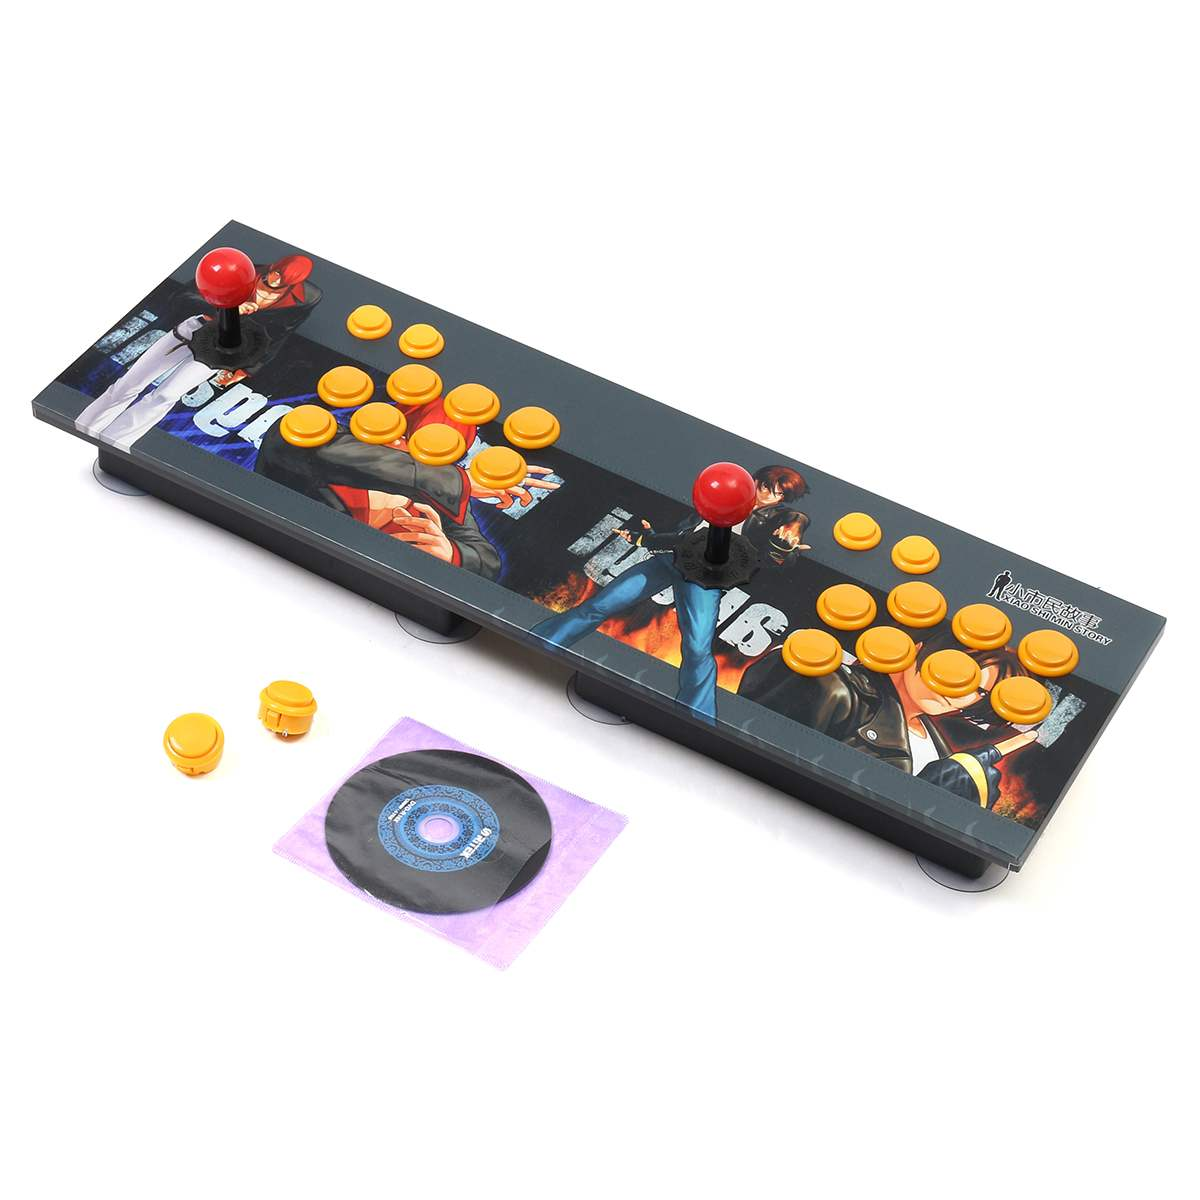 Double Arcade Stick Video Game Joystick 8 Button Controller Console PC USB 2 Player Video Game Machine Game Playing Accessories